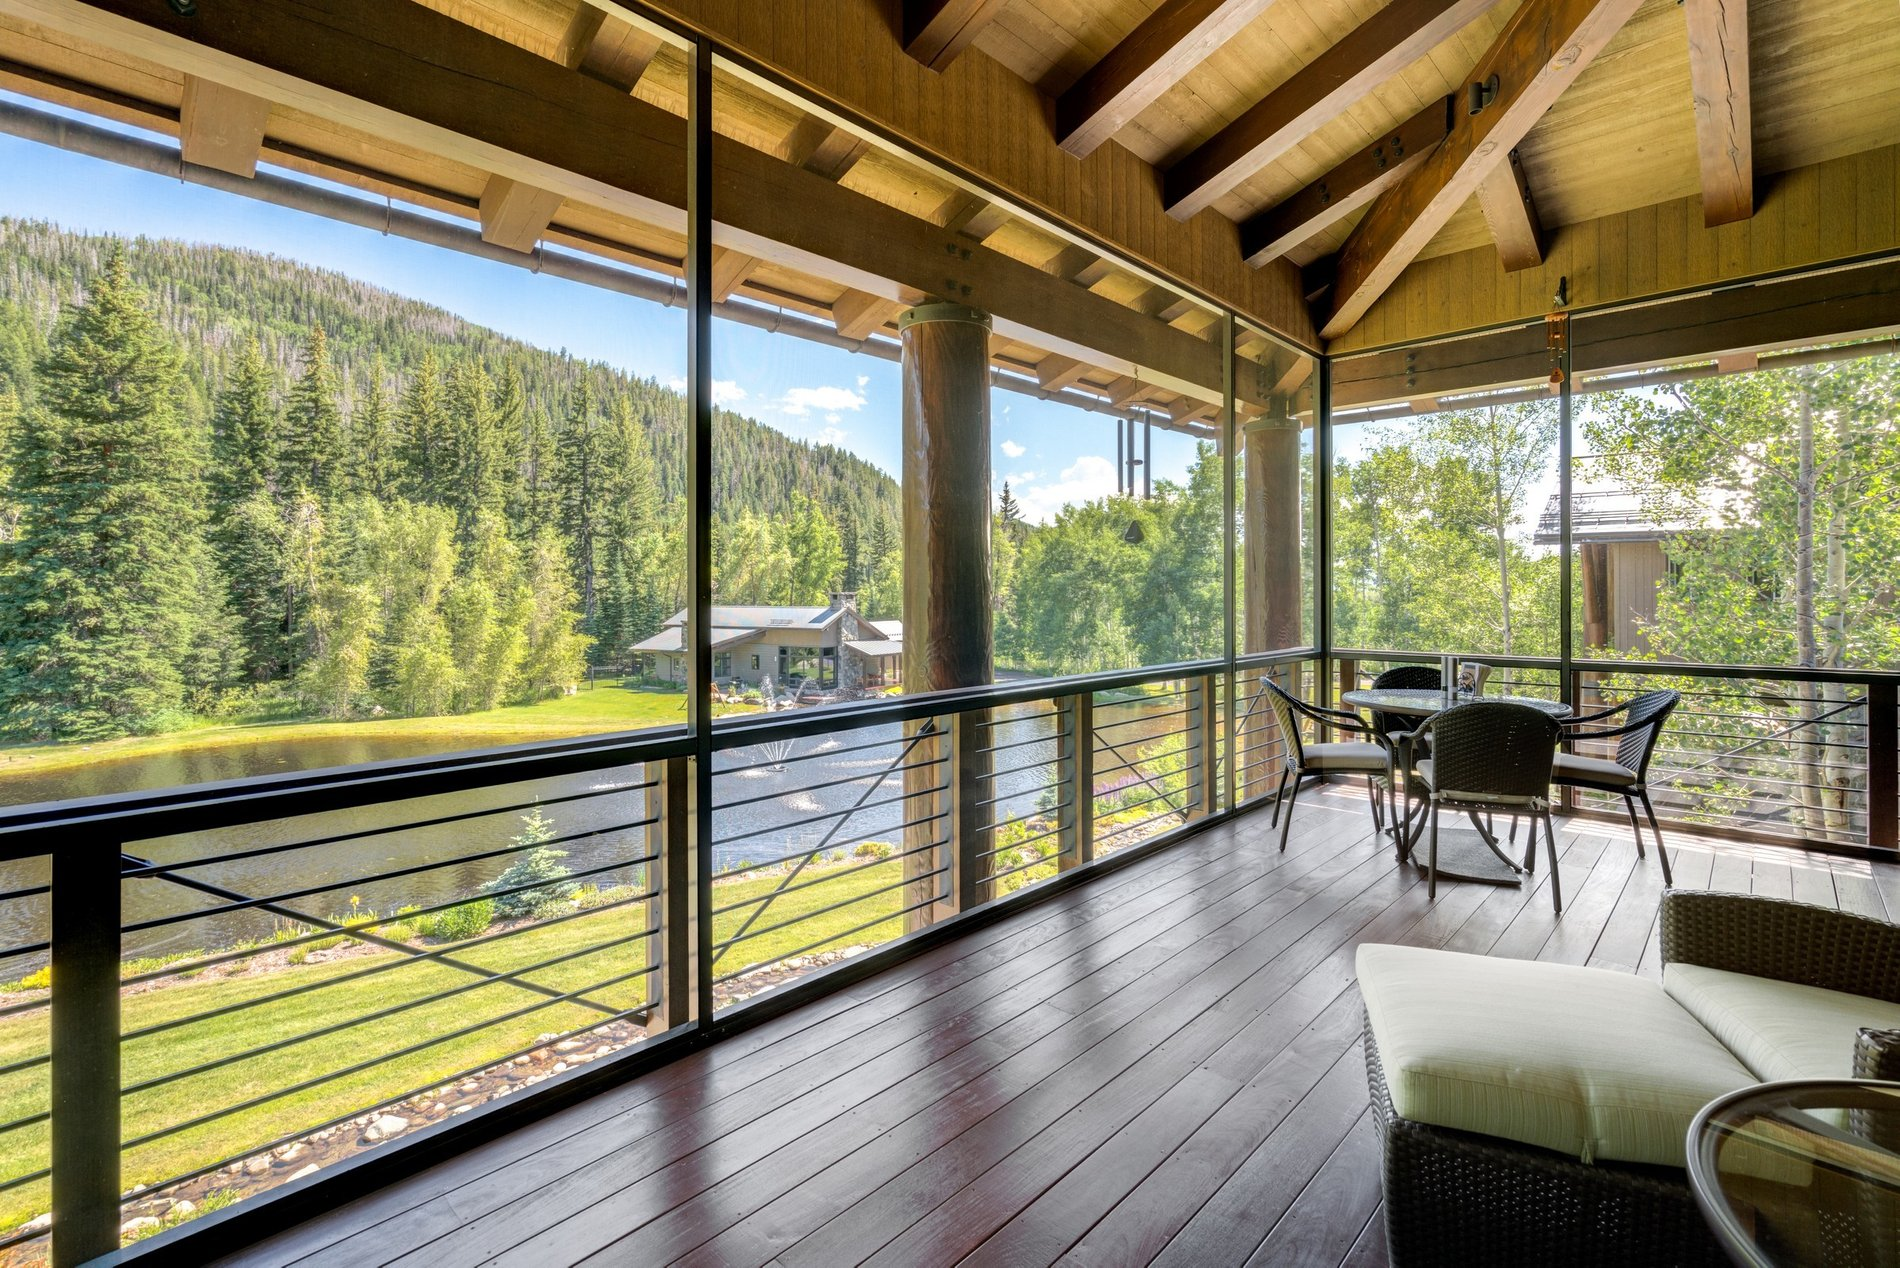 A covered deck overlooking the lake and countryside with real wood decking and ceiling beams. modern rustic home.